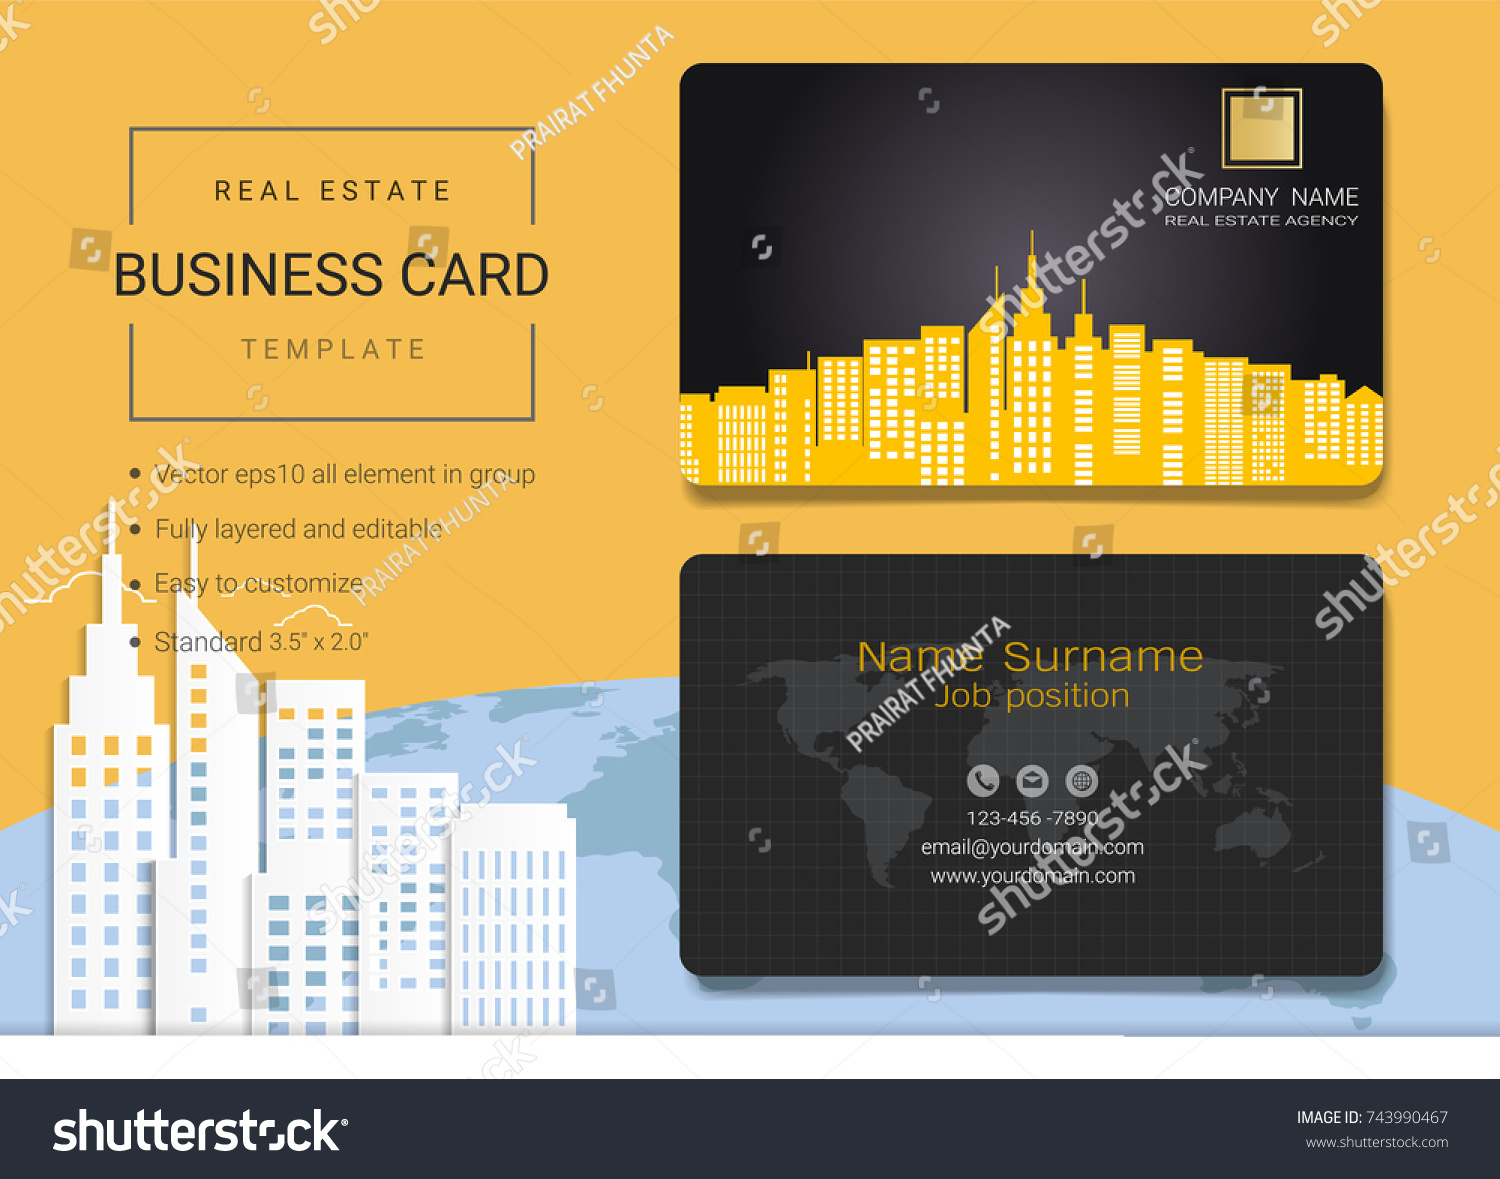 Real estate business card name card stock vector 743990467 real estate business card or name card template simple style also modern and elegant with magicingreecefo Images